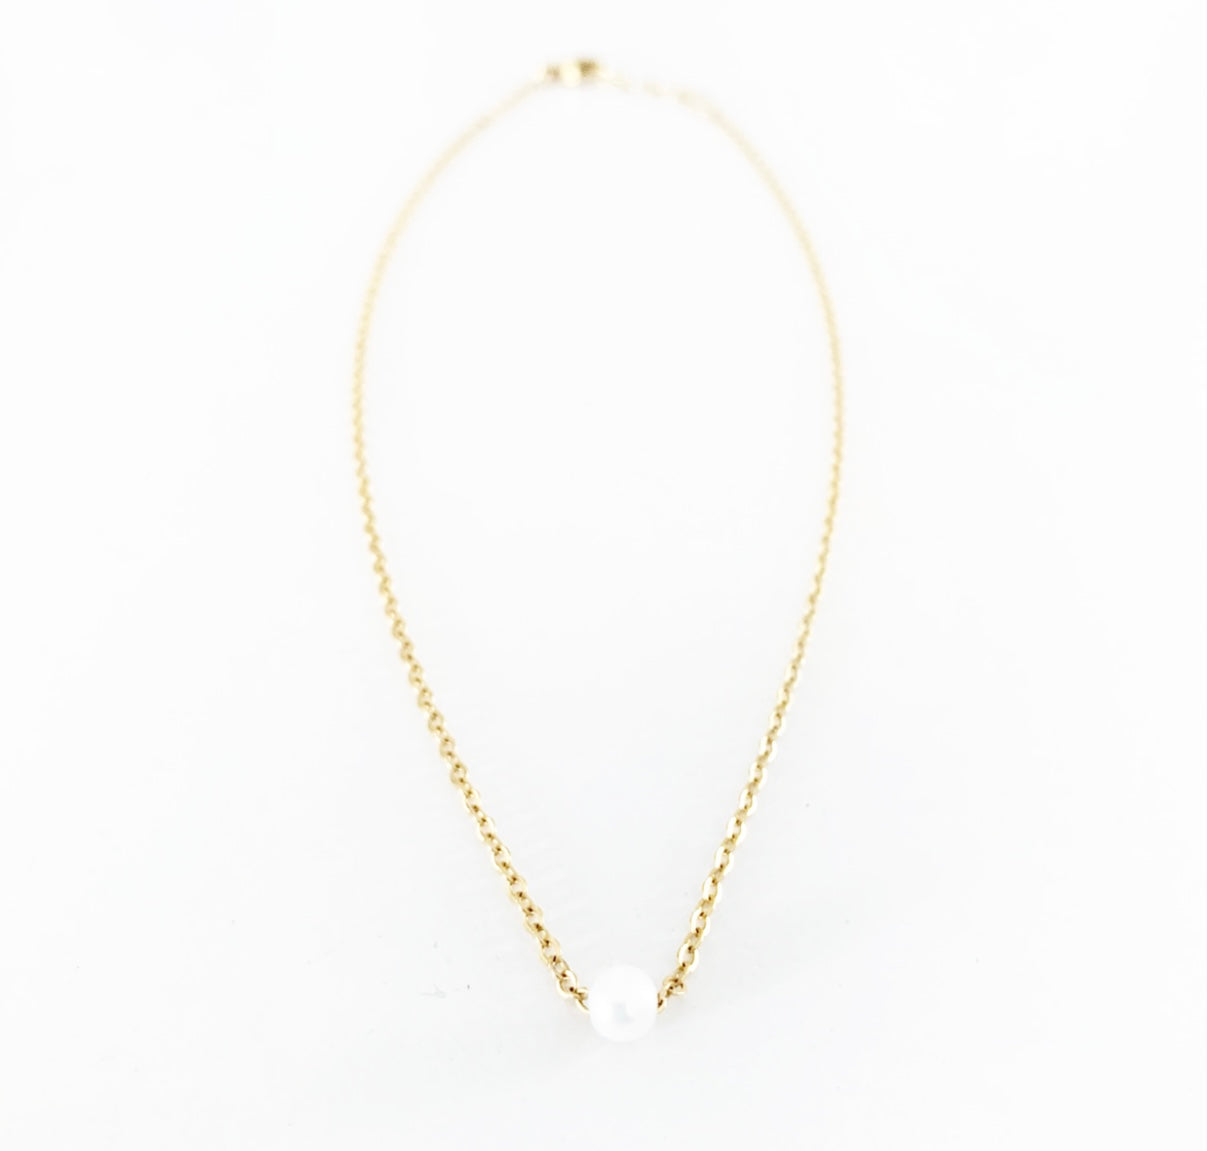 Heather Matjasic Ohm Jewelry Shop Dame Pearl Gold Necklace